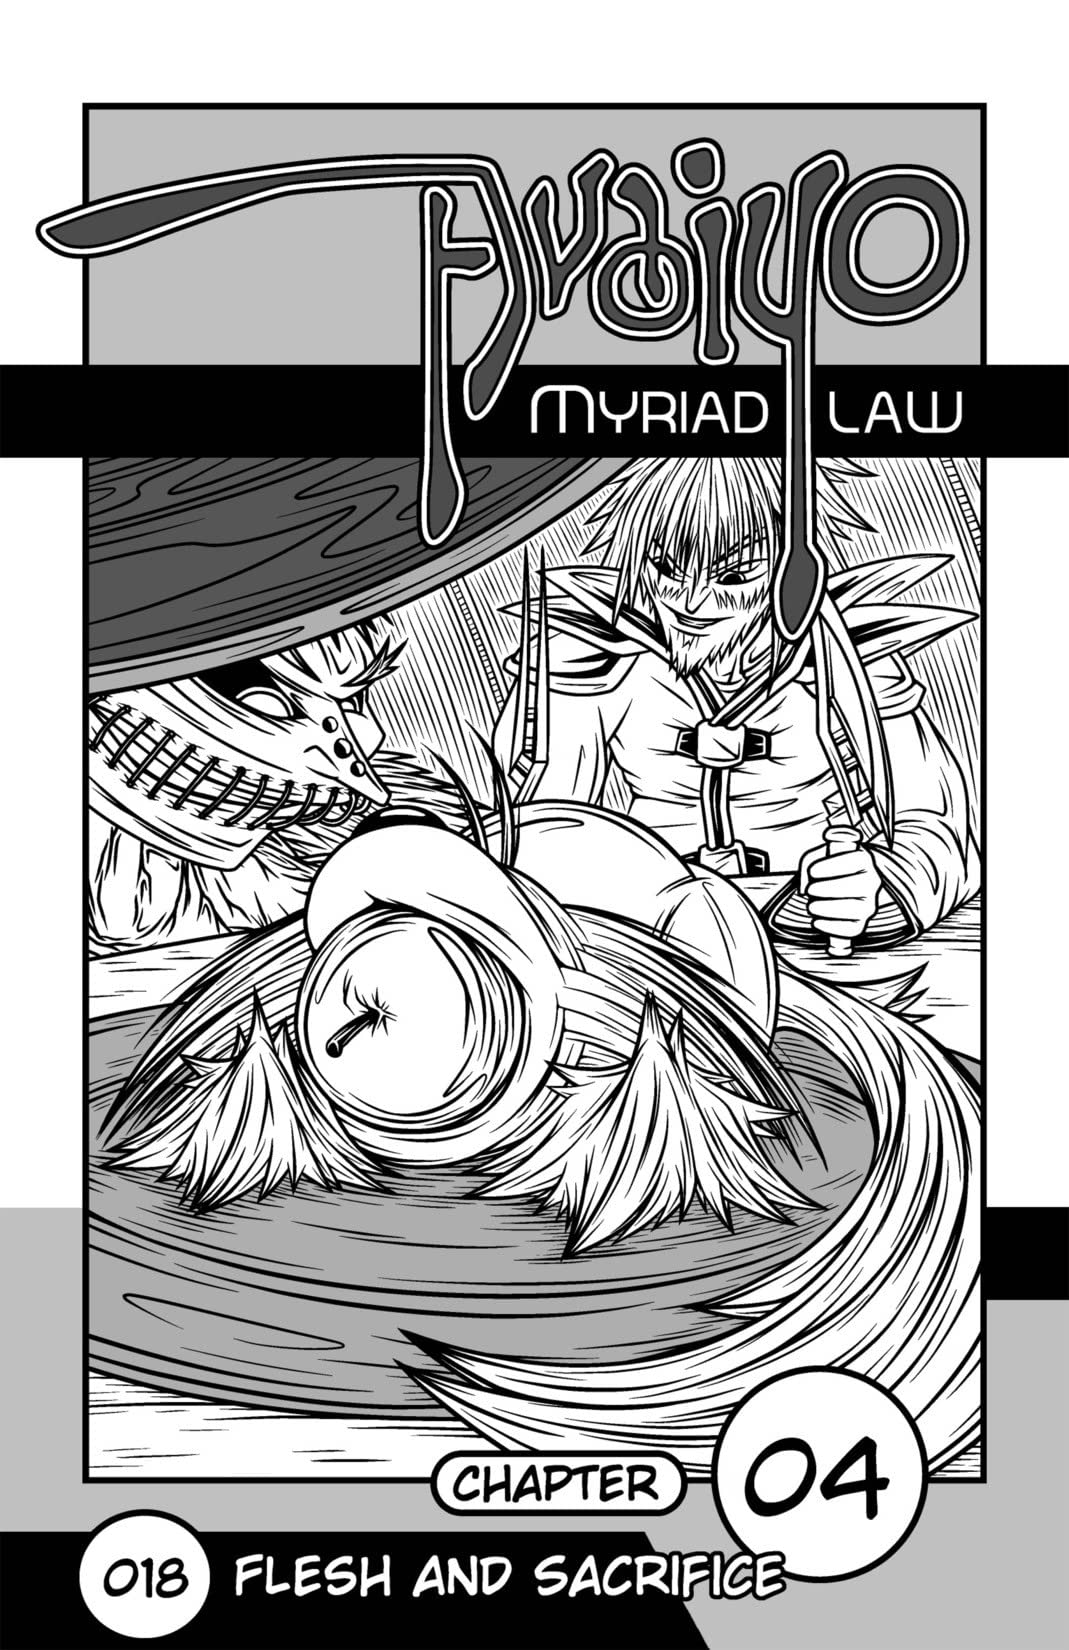 Avaiyo: Myriad Law #018